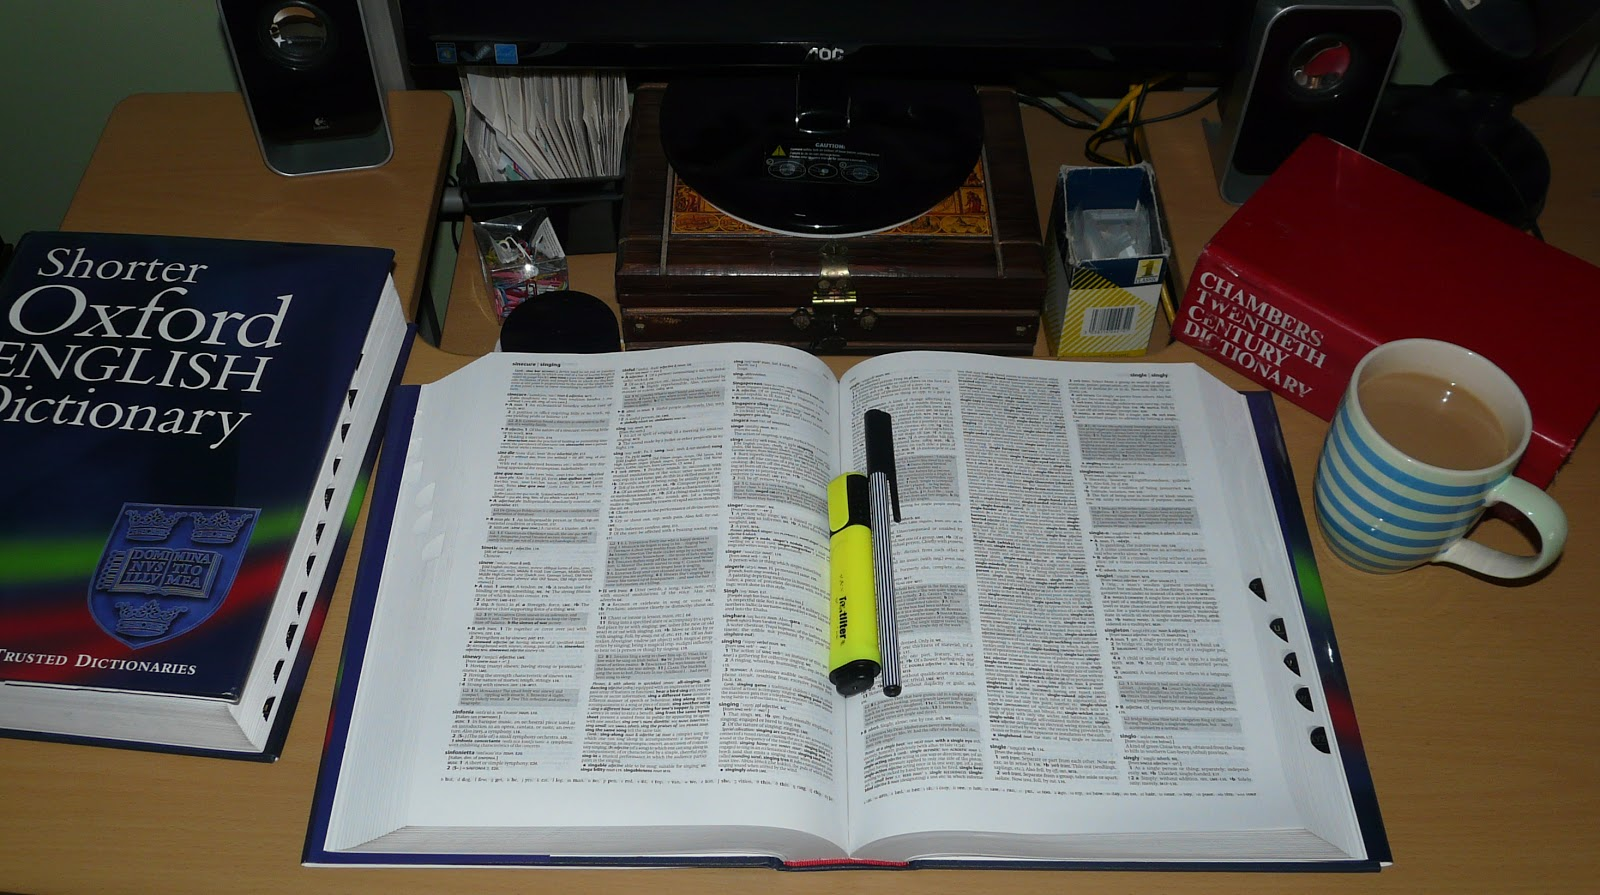 dissertation oxford english dictionary Oxford classical dictionary - abbreviations list b authors and books note: [- -] names of authors or works in square brackets indicate false or doubtful attributions.